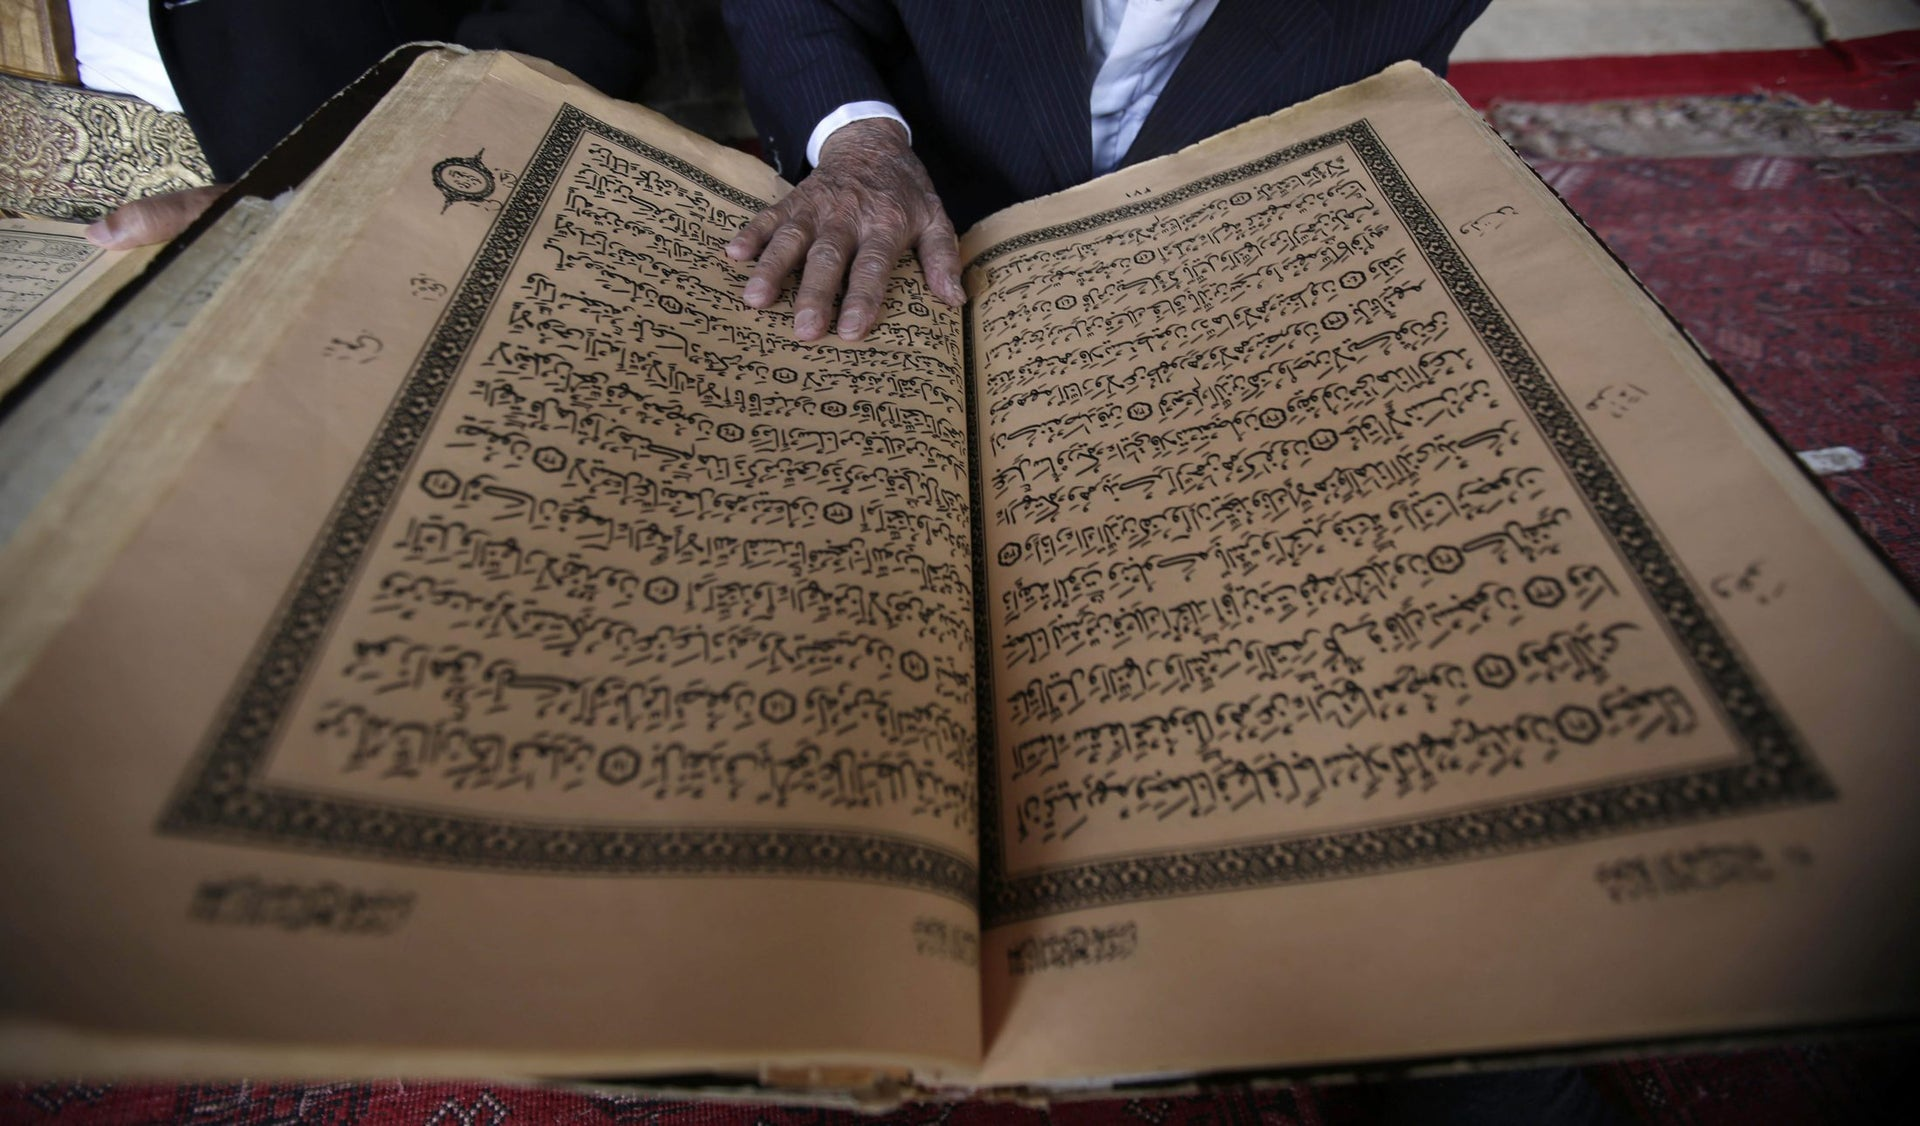 An elderly man reads verses of the Quran, Islam's holy book, on the first day of the fasting month of Ramadan in the Grand Mosque in the old city of Sanaa, Yemen, Monday, June 6, 2016.